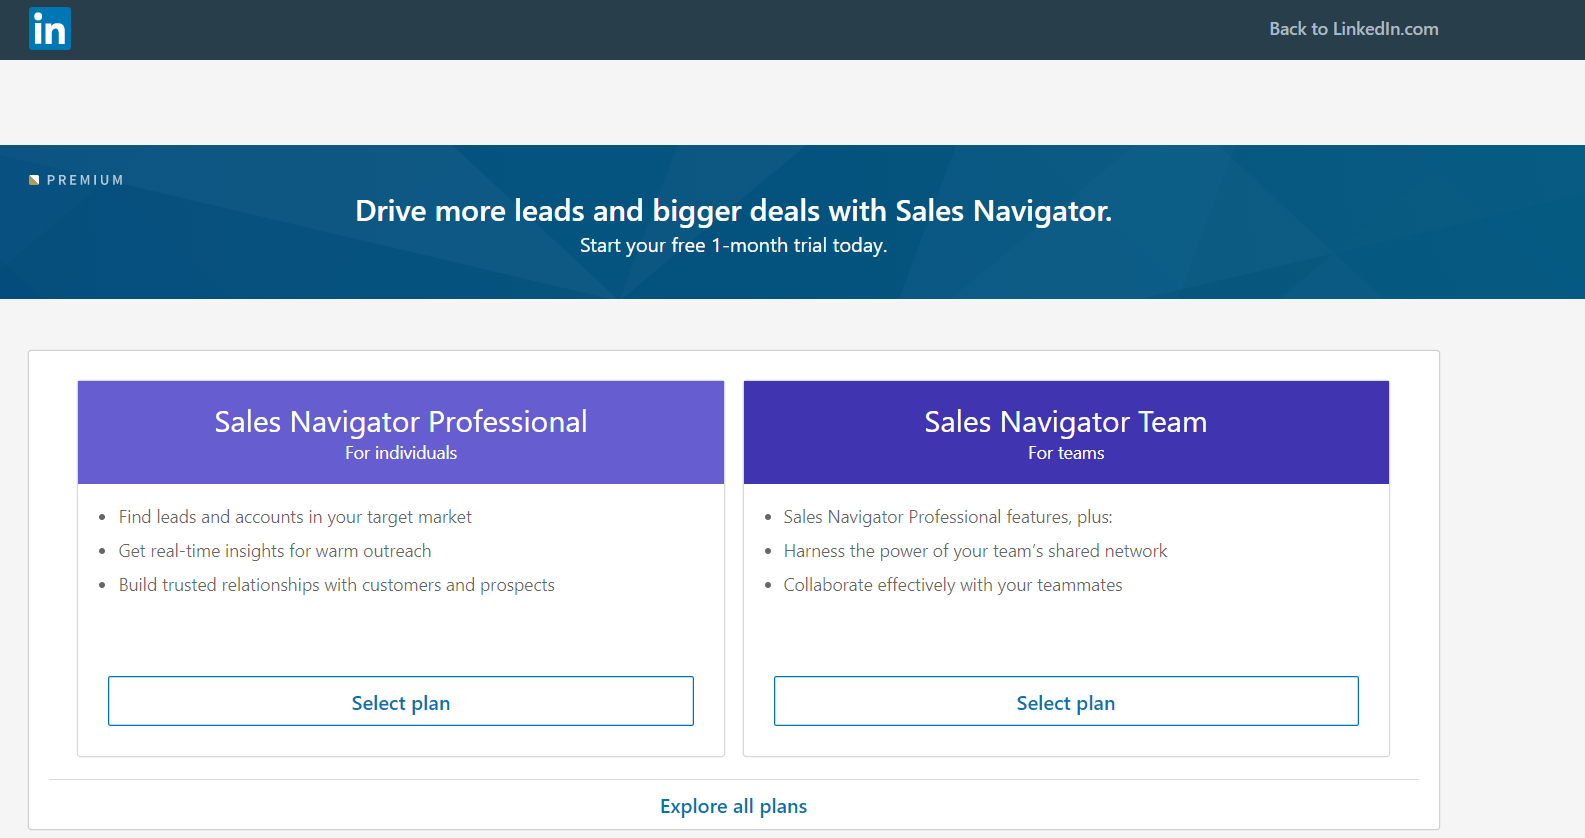 LinkedIn Sales Manager is available for individuals and businesses